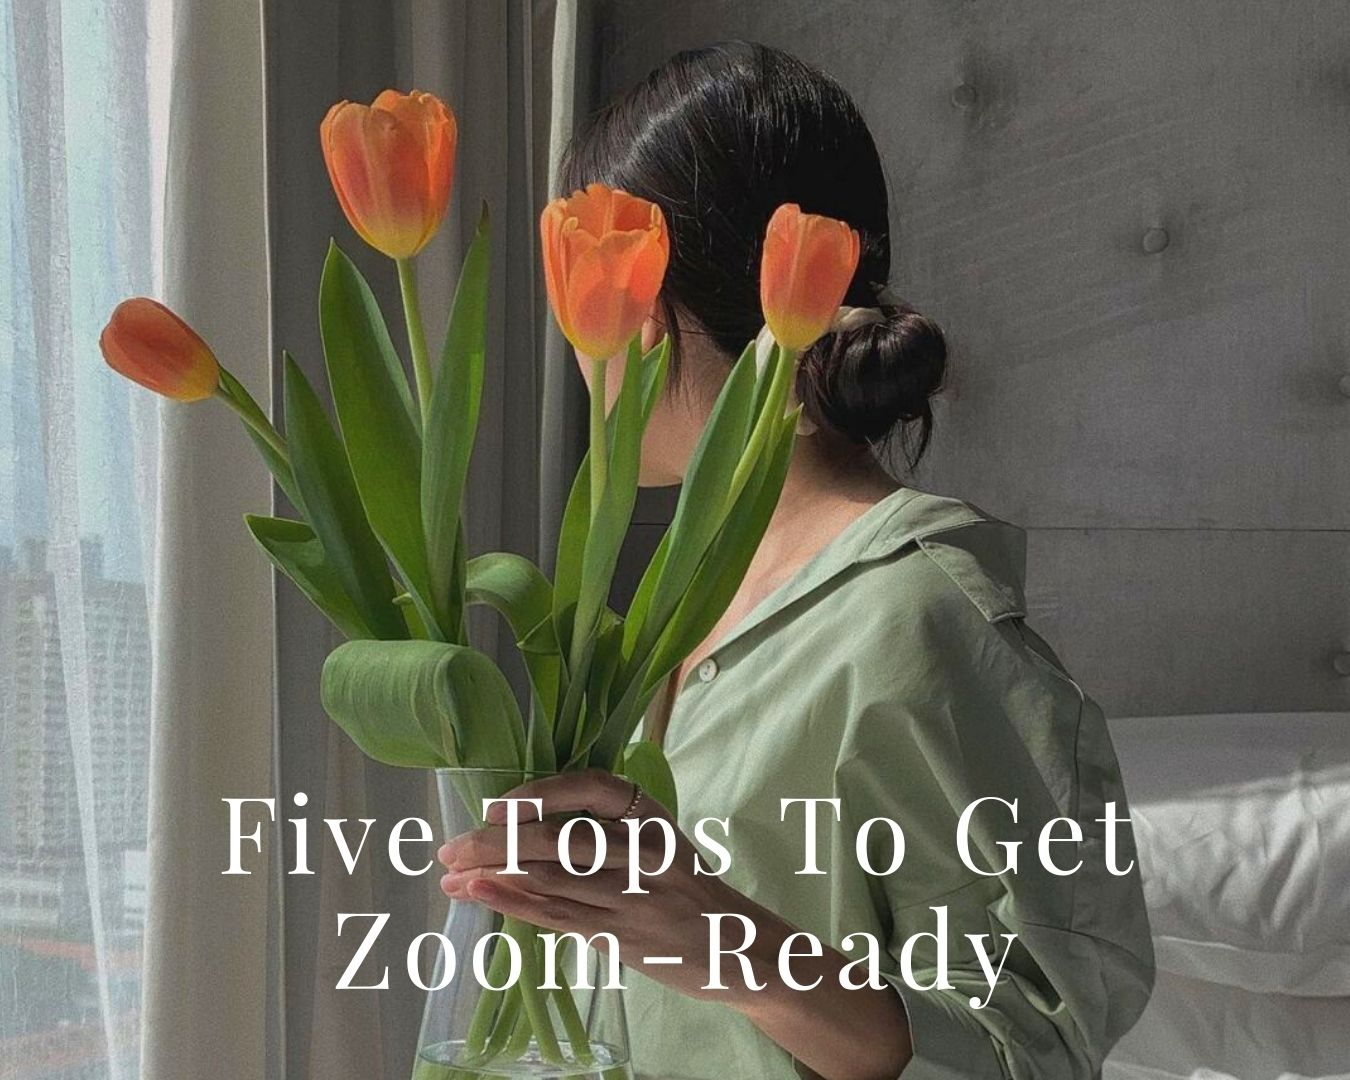 5 Tops To Get Zoom-Ready